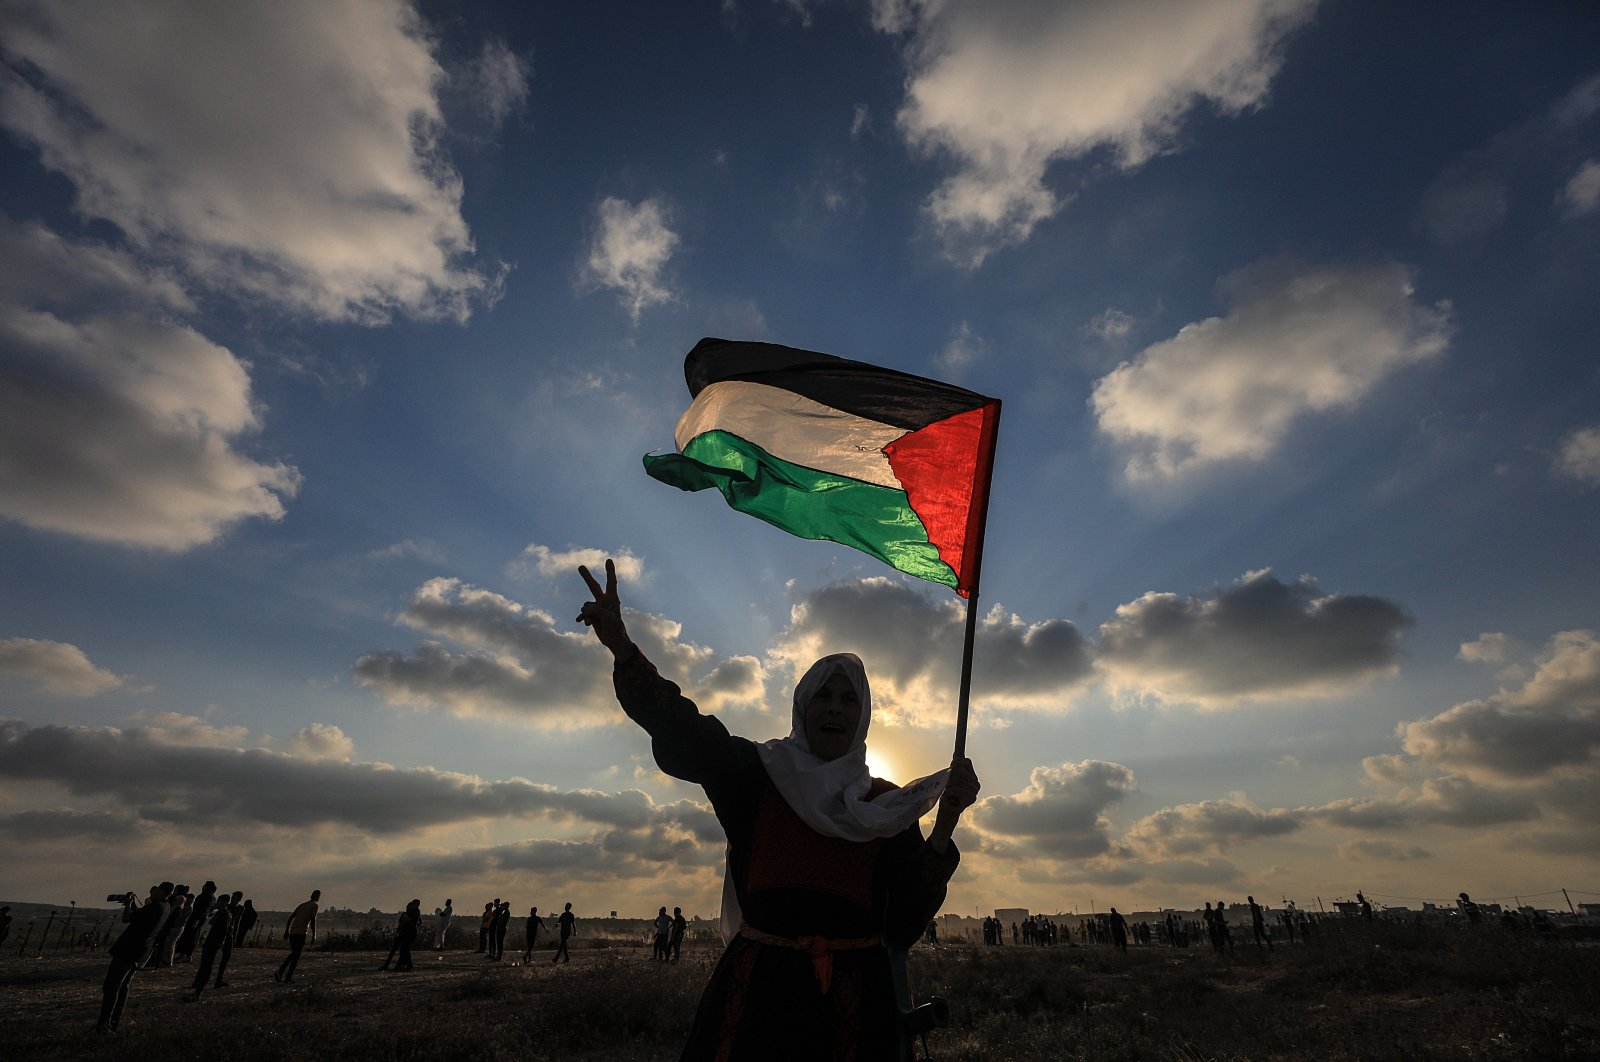 An elderly Palestinian woman holds up a Palestinian flag during a demonstration near the border between Israel and Gaza Strip, Aug. 21, 2021. (EPA Photo)